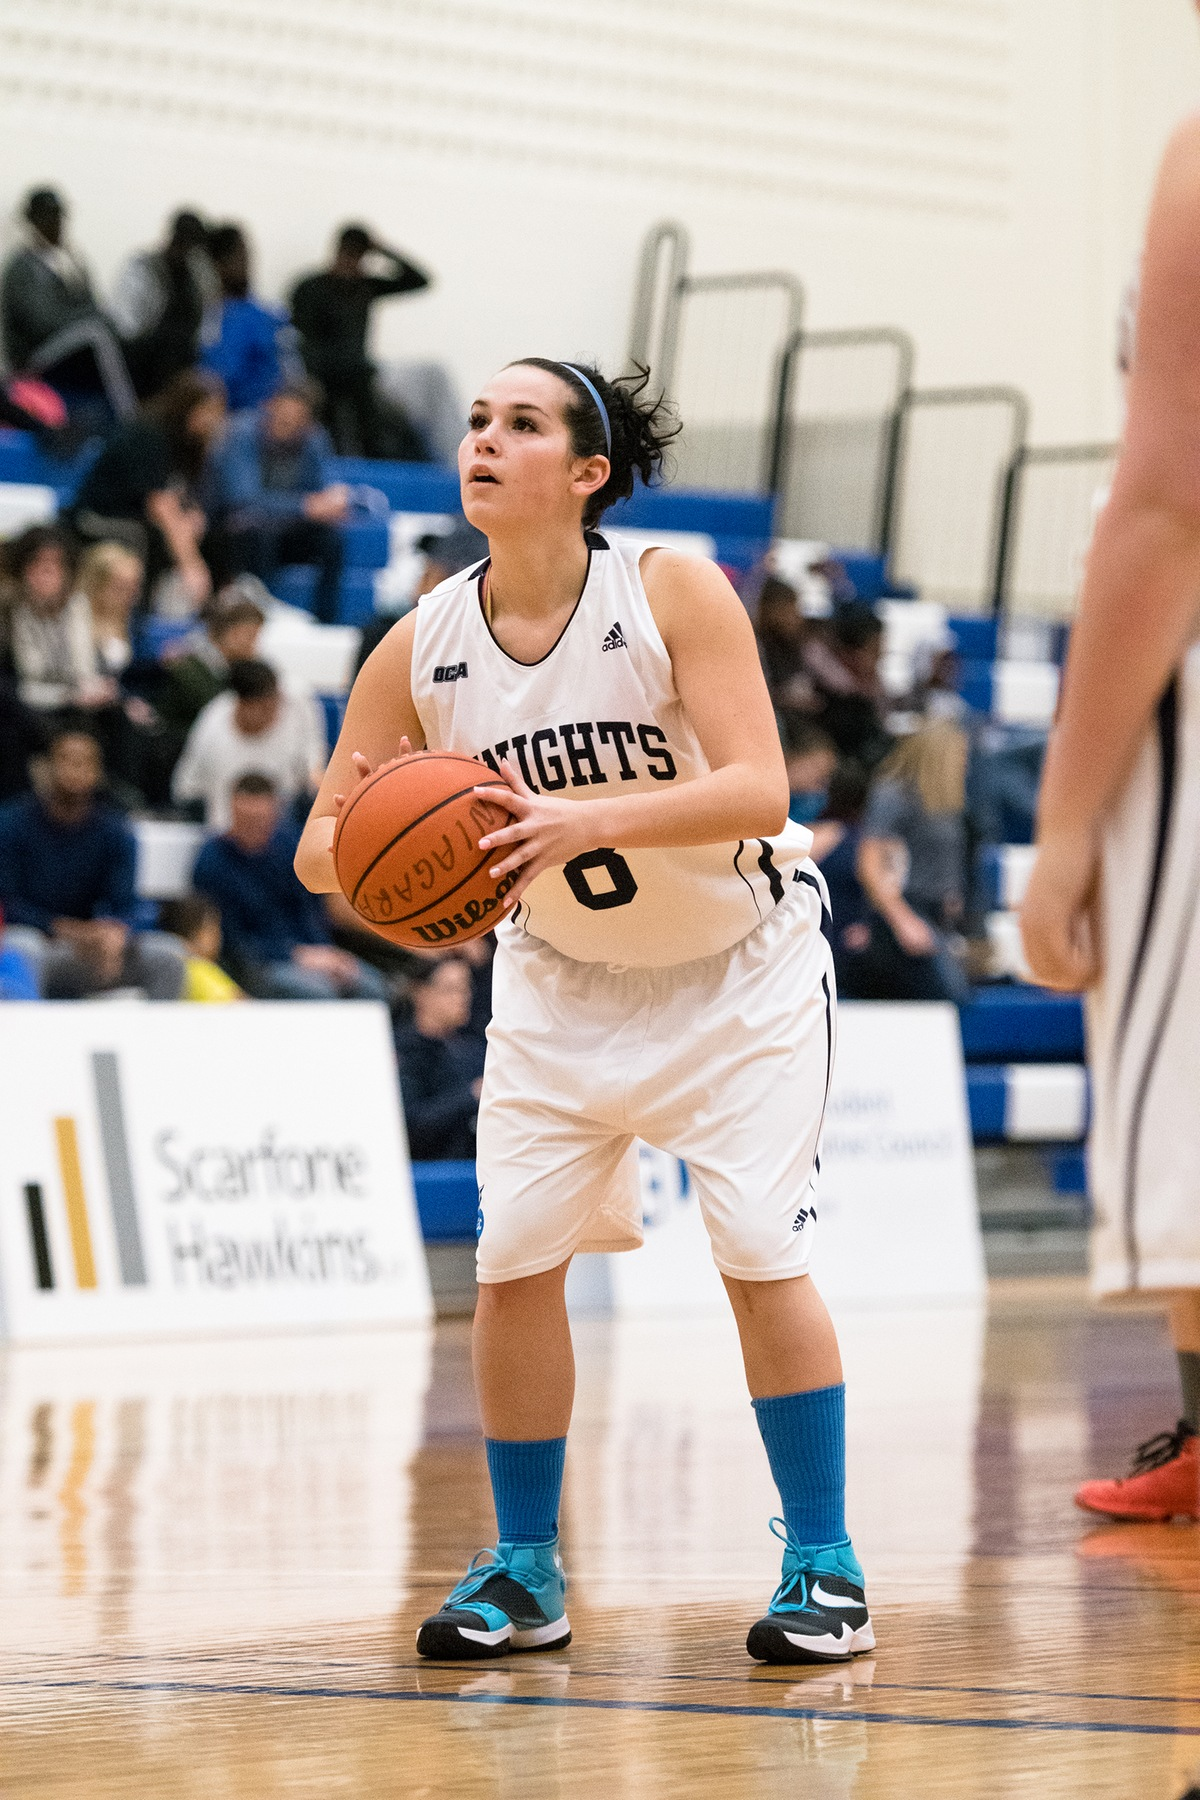 RECAP: Knights fall to Mountaineers in season opener; Look to rebound against U of T Mississauga